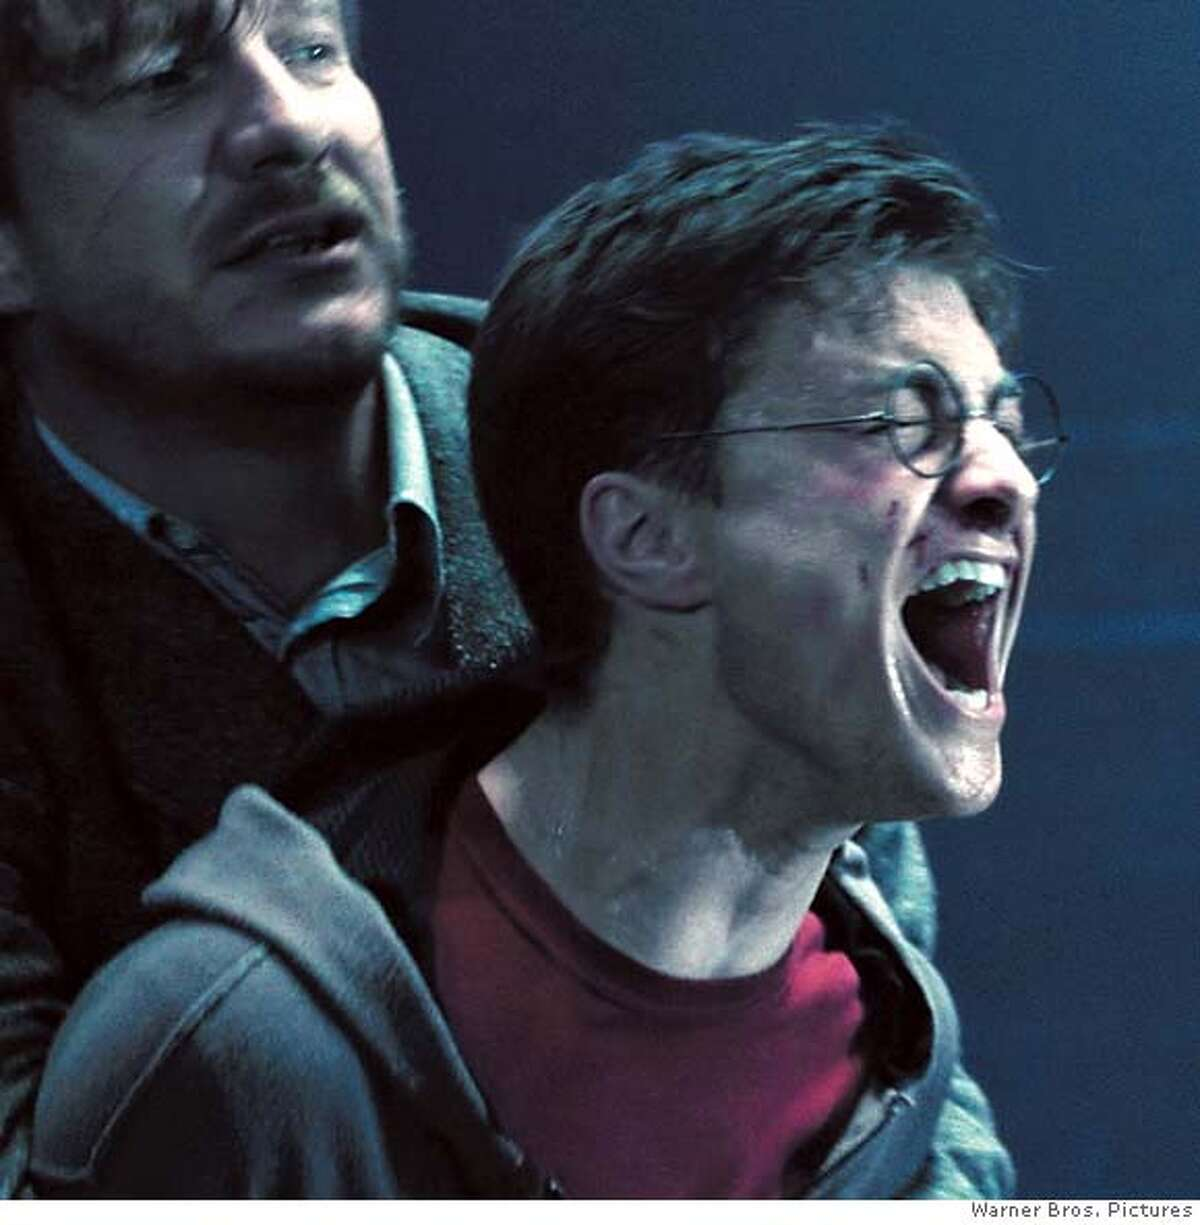 """DAVID THEWLIS as Remus Lupin and DANIEL RADCLIFFE as Harry Potter in Warner Bros. Pictures' fantasy """"Harry Potter and the Order of the Phoenix.""""PHOTOGRAPHS TO BE USED SOLELY FOR ADVERTISING, PROMOTION, PUBLICITY OR REVIEWS OF THIS SPECIFIC MOTION PICTURE AND TO REMAIN THE PROPERTY OF THE STUDIO. NOT FOR SALE OR REDISTRIBUTION."""